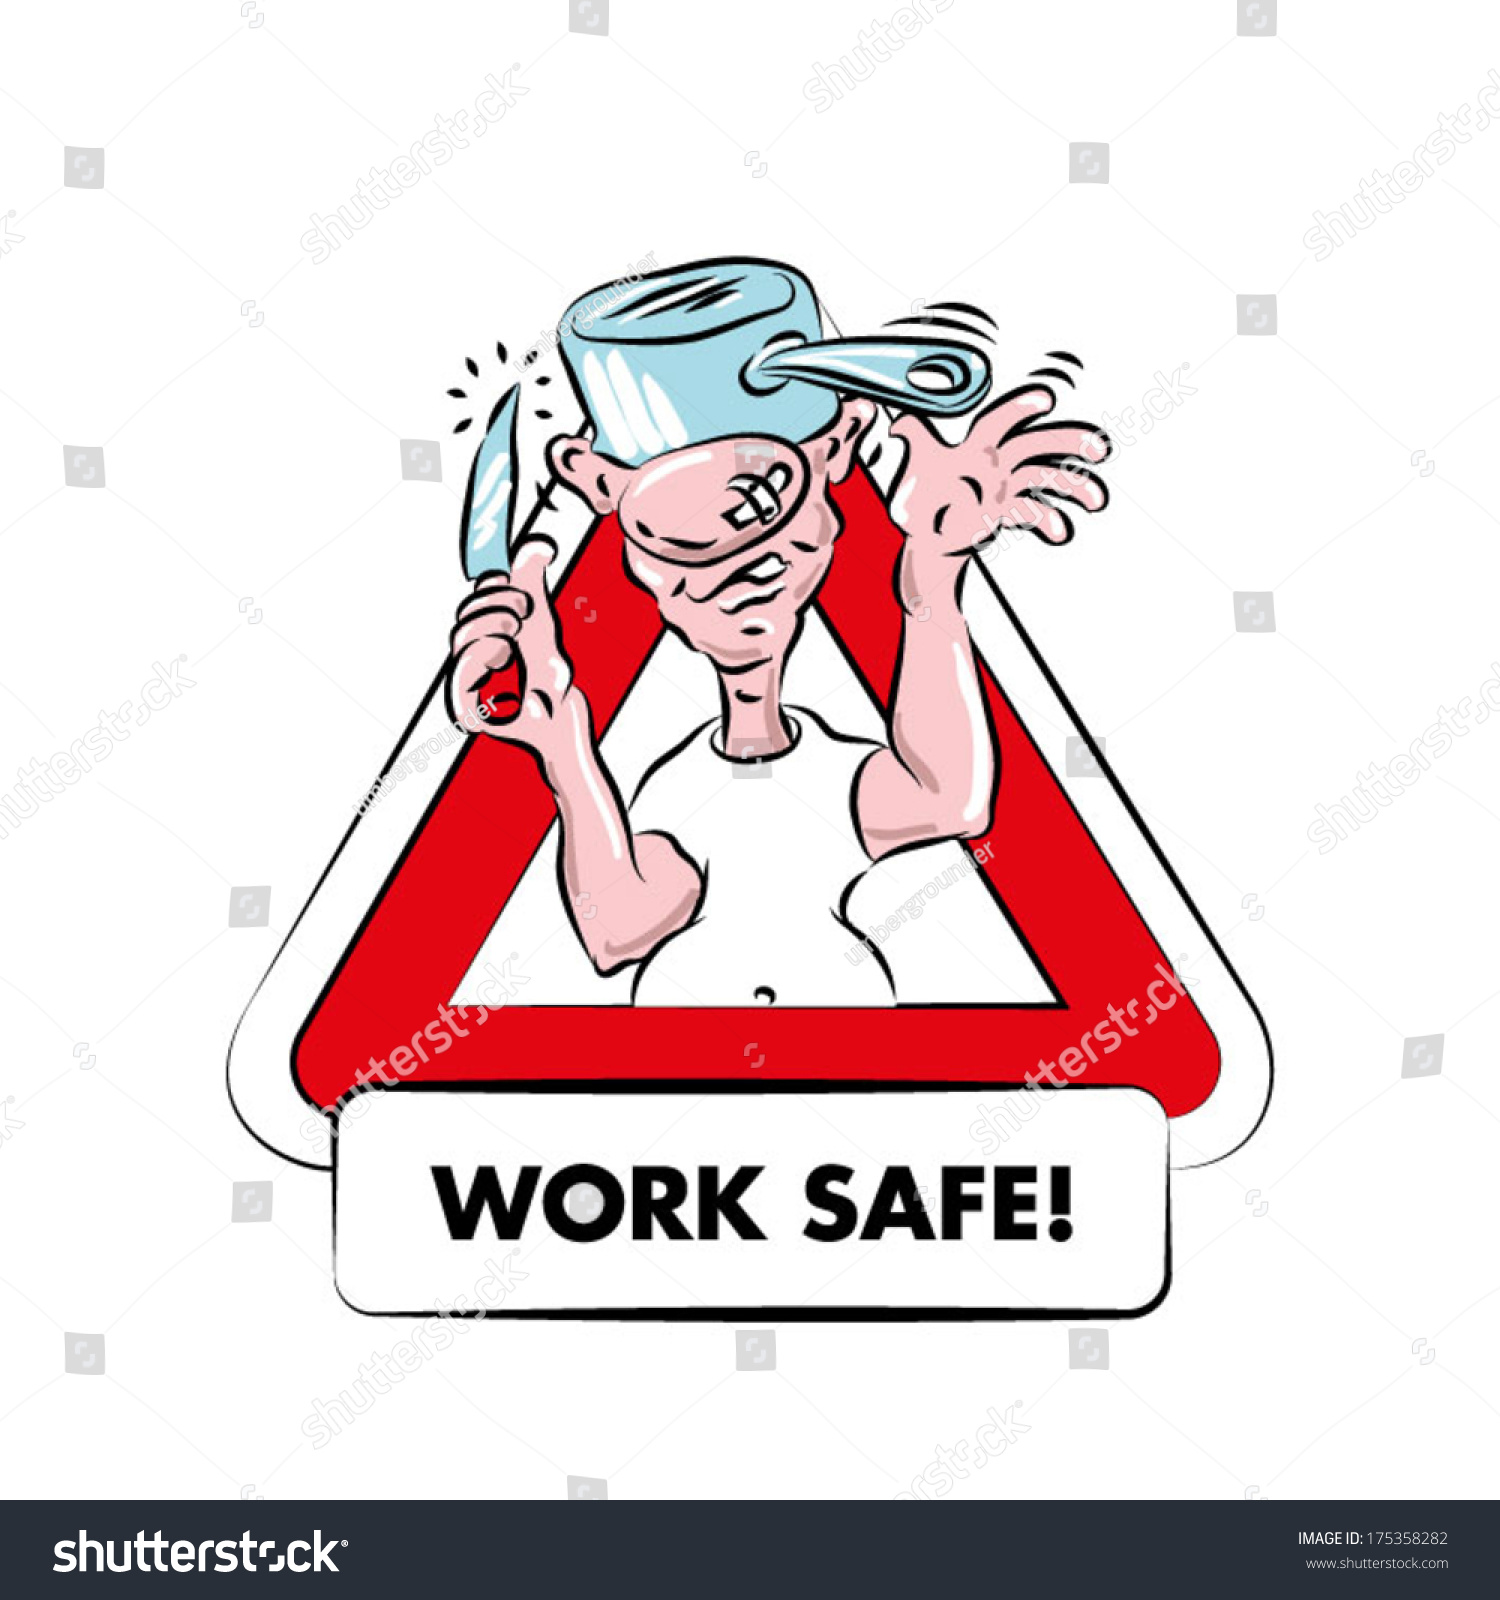 Kitchen Safety Signs Download: Cartoon Warning Sign Kitchen Safety Funny Stock Vector